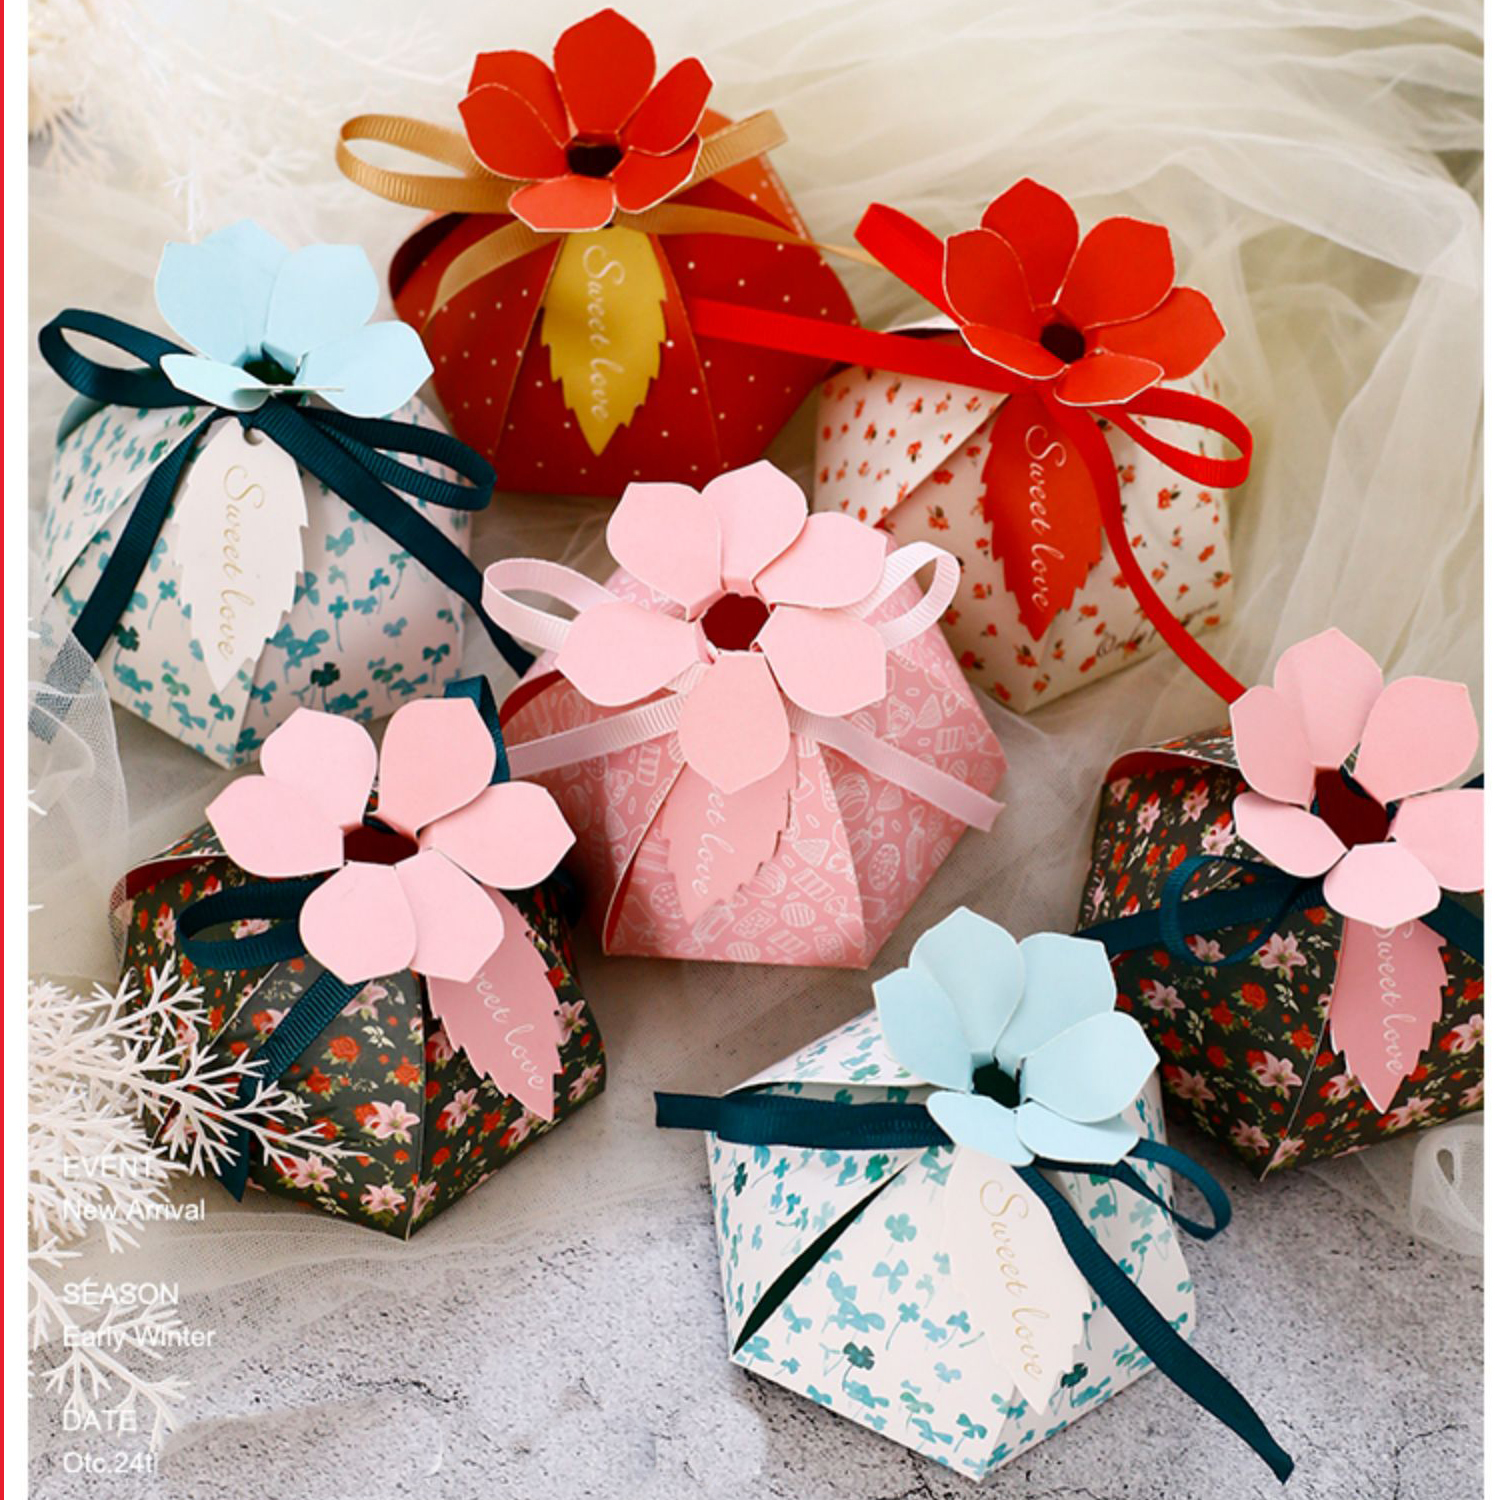 New Multicolor 6 Leaf Petal Candy Paper Favor Box Gift Bags Wedding Favors And Gift Boxes For Wedding Baby Shower Party Supplies